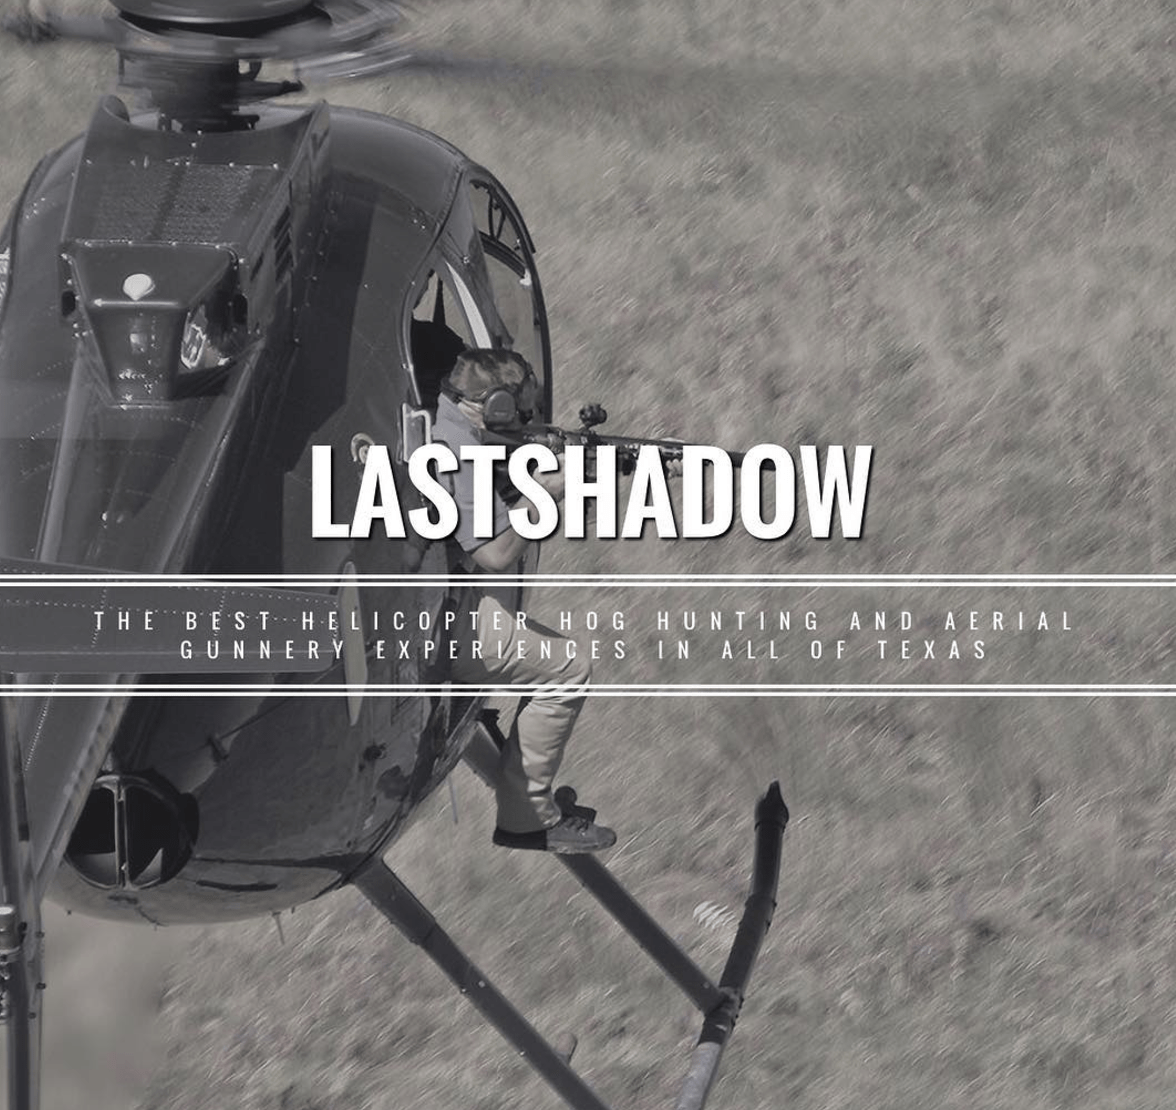 Last Shadow: Extended Helicopter Hog Hunt